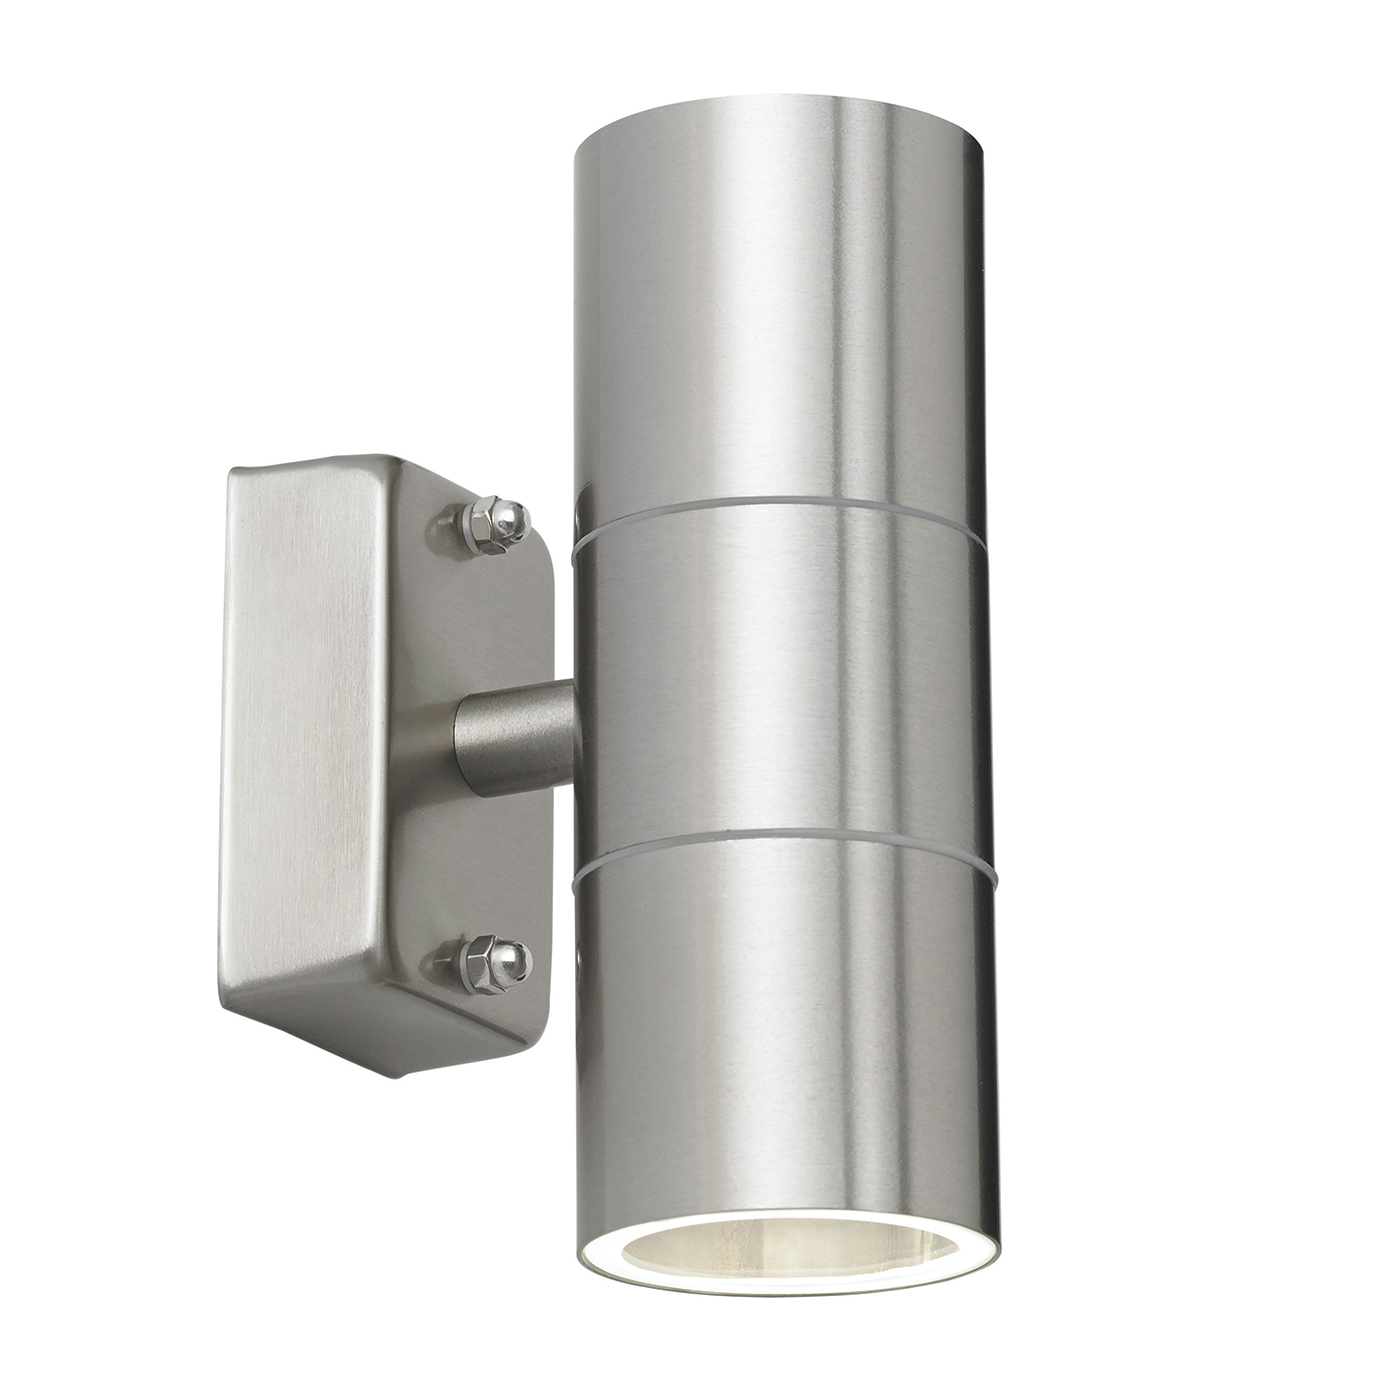 Endon Canon Up Down Outdoor Wall Light Ip44 35w Polished